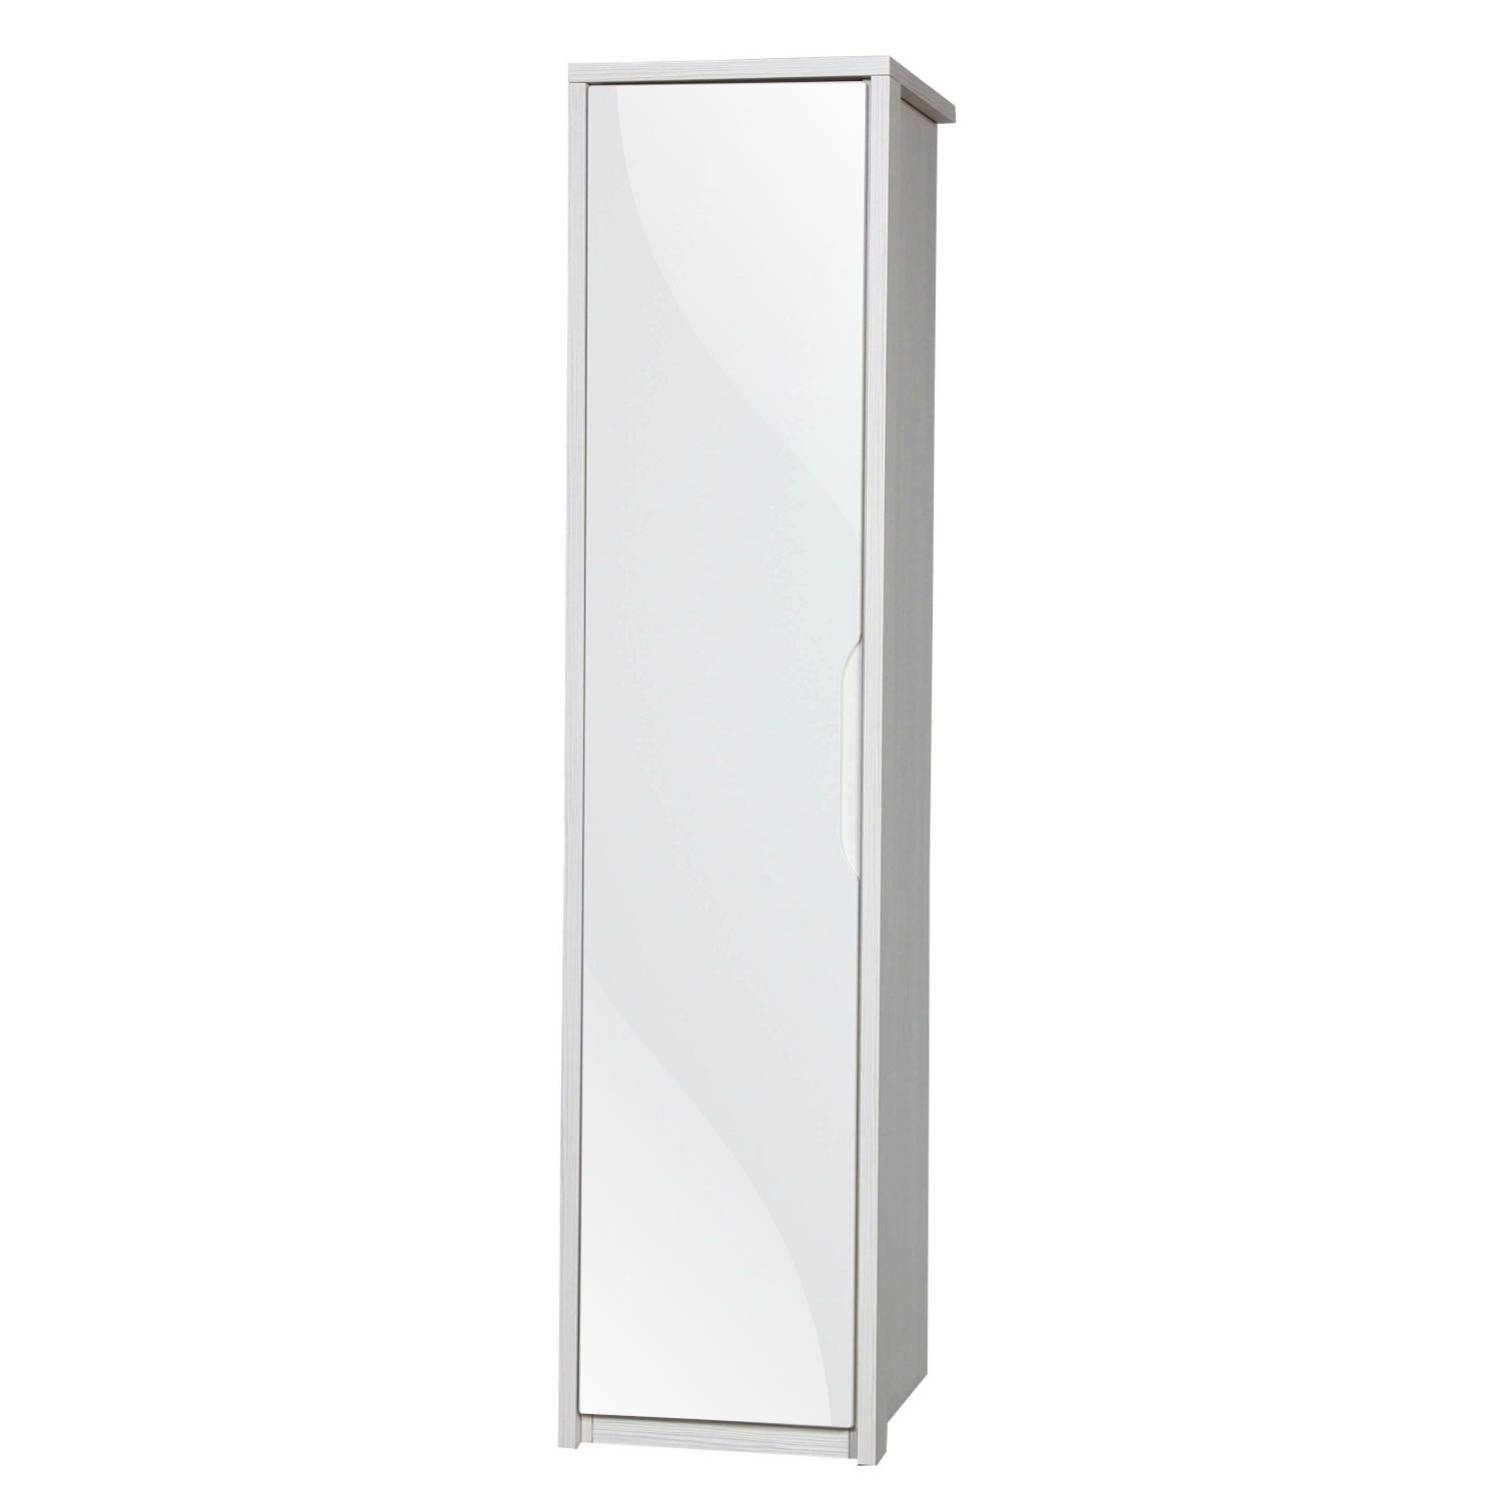 Avola Cream Gloss Single Wardrobe – Next Day Delivery Avola Cream Pertaining To Cream Single Wardrobes (View 3 of 15)